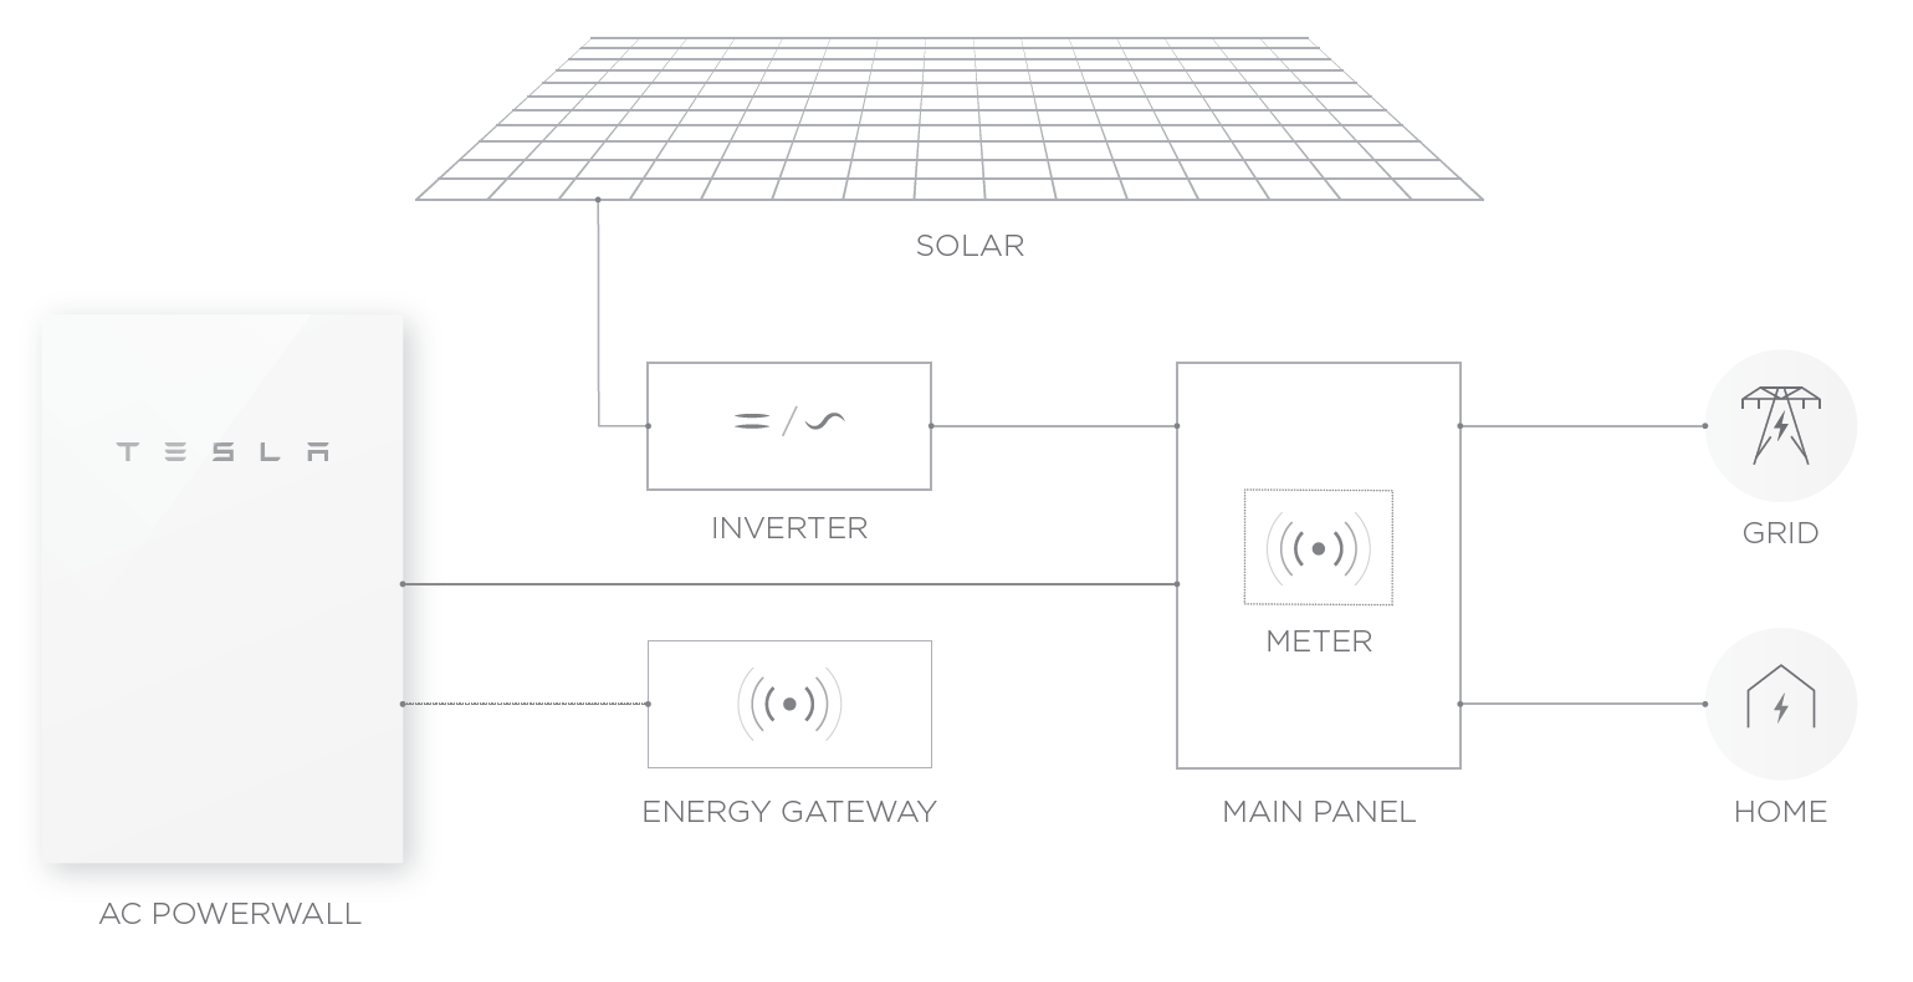 solar panel wiring diagram with Tesla Powerwall 2 on Solar further Document in addition File Solar Cooker Design Maria Telkes moreover Wire Diagrams Easy Simple Detail Baja Franklin Electric Control Box Wiring Diagram Free  hp wiring together with Blueprints Wiring Diagrams.